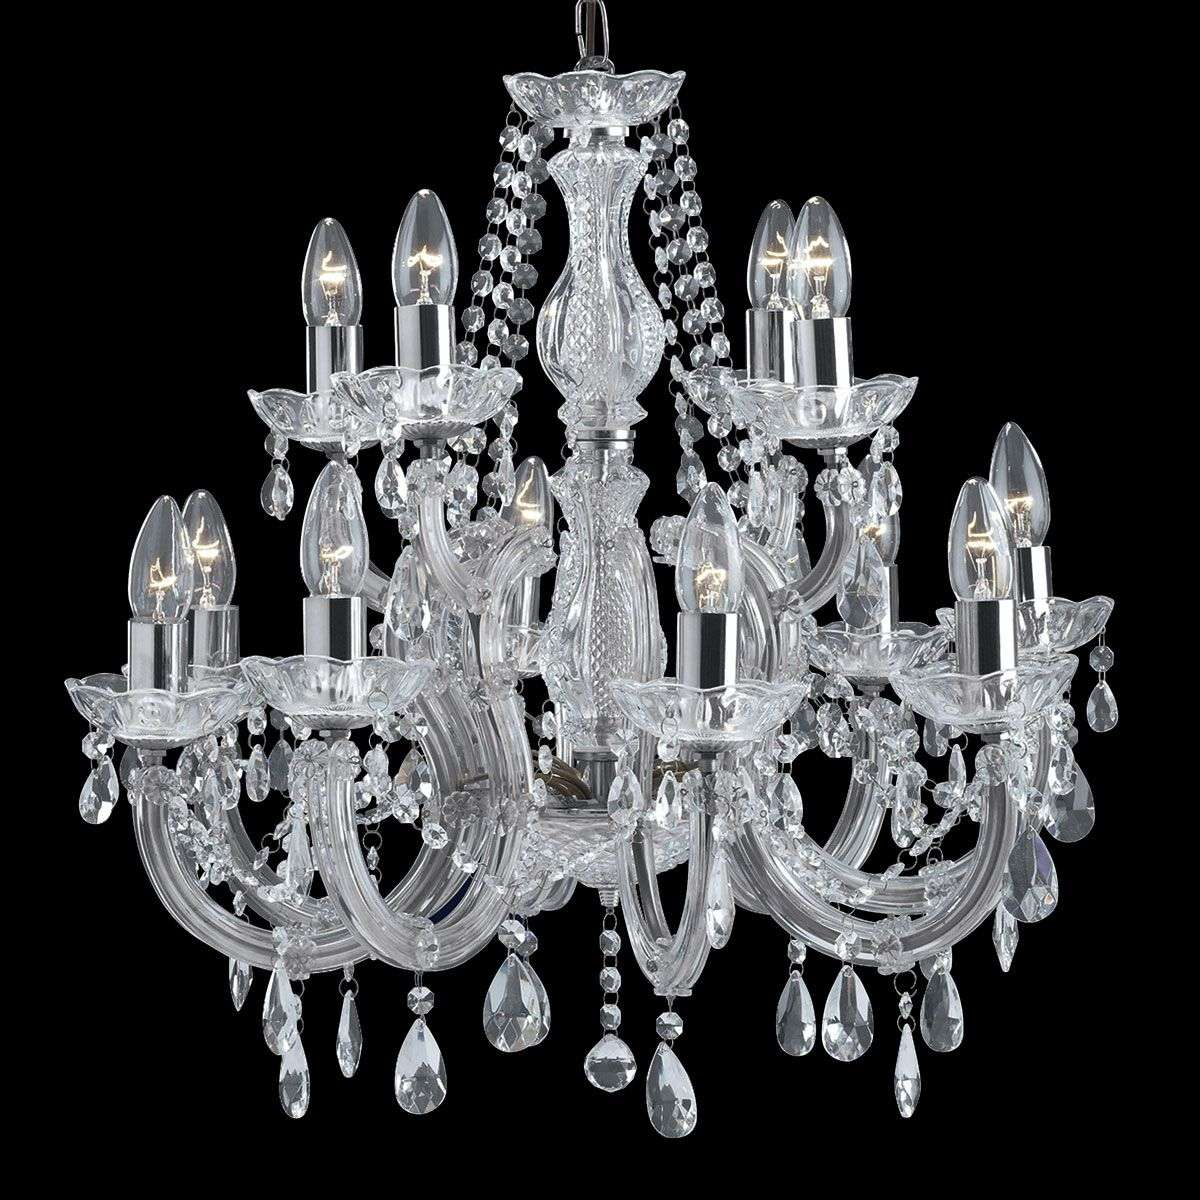 Classic marie therese chandelier 12 fl chrome lights classic marie therese chandelier 12 fl chrome 8570418 31 mozeypictures Image collections